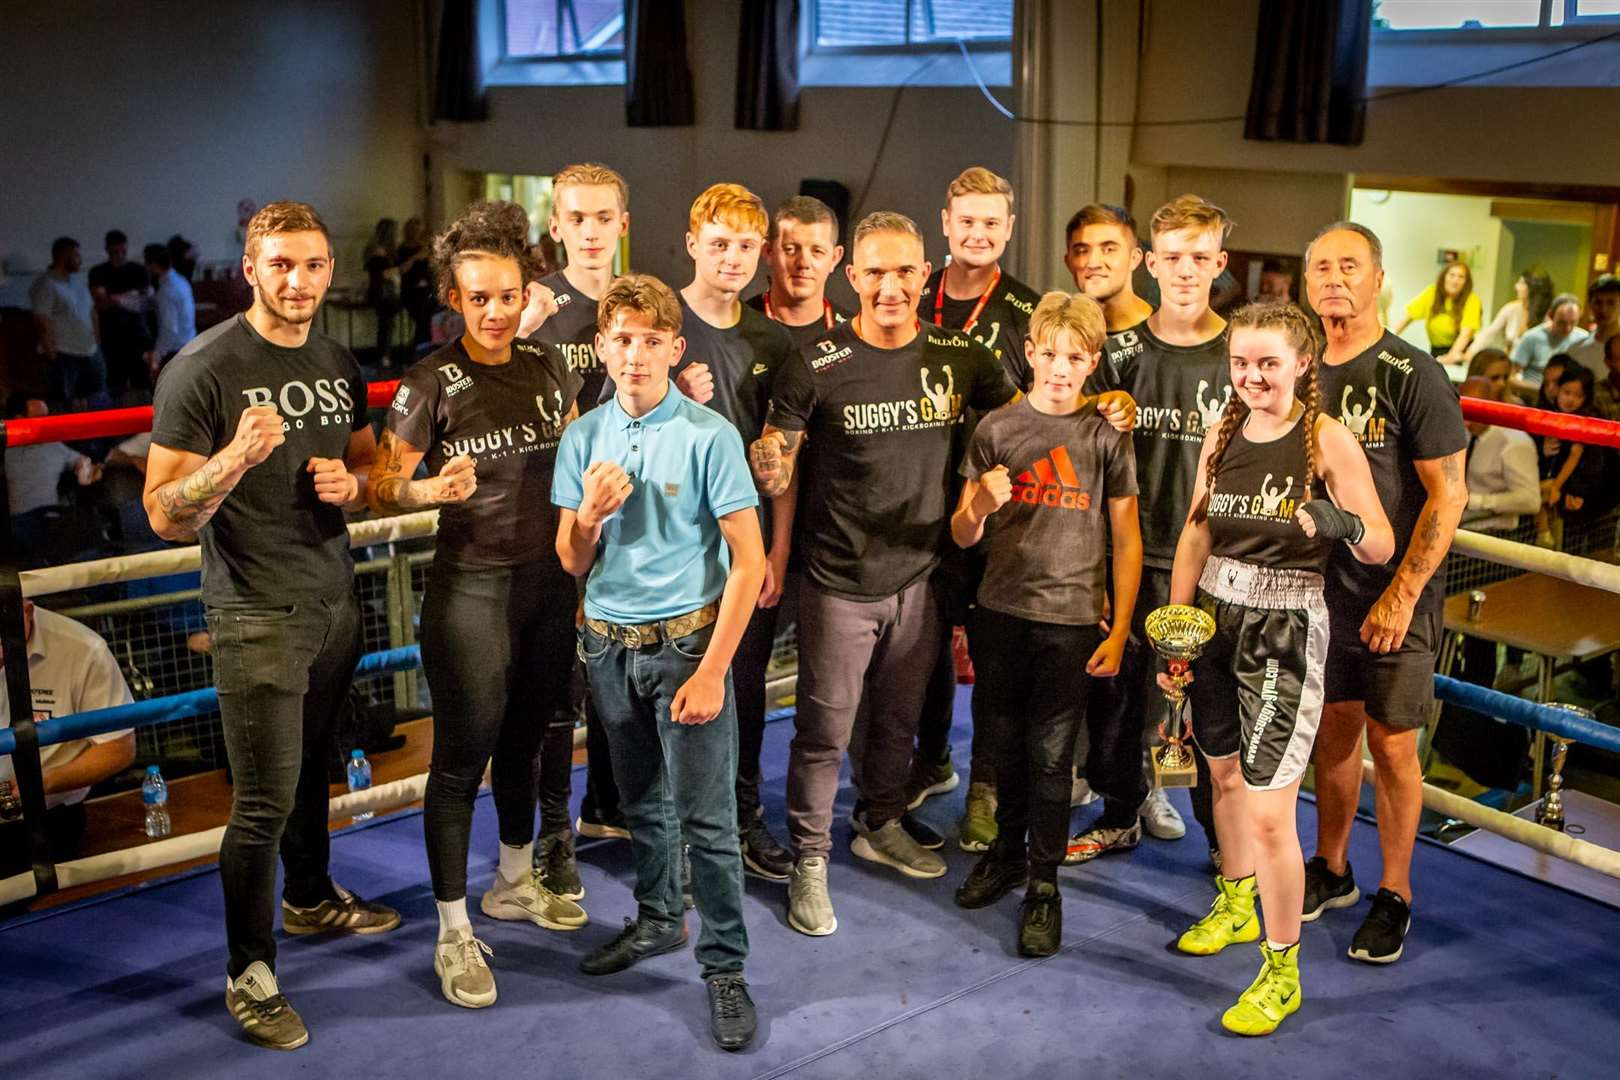 Fighters from Newark Amateur Boxing Club after the show.